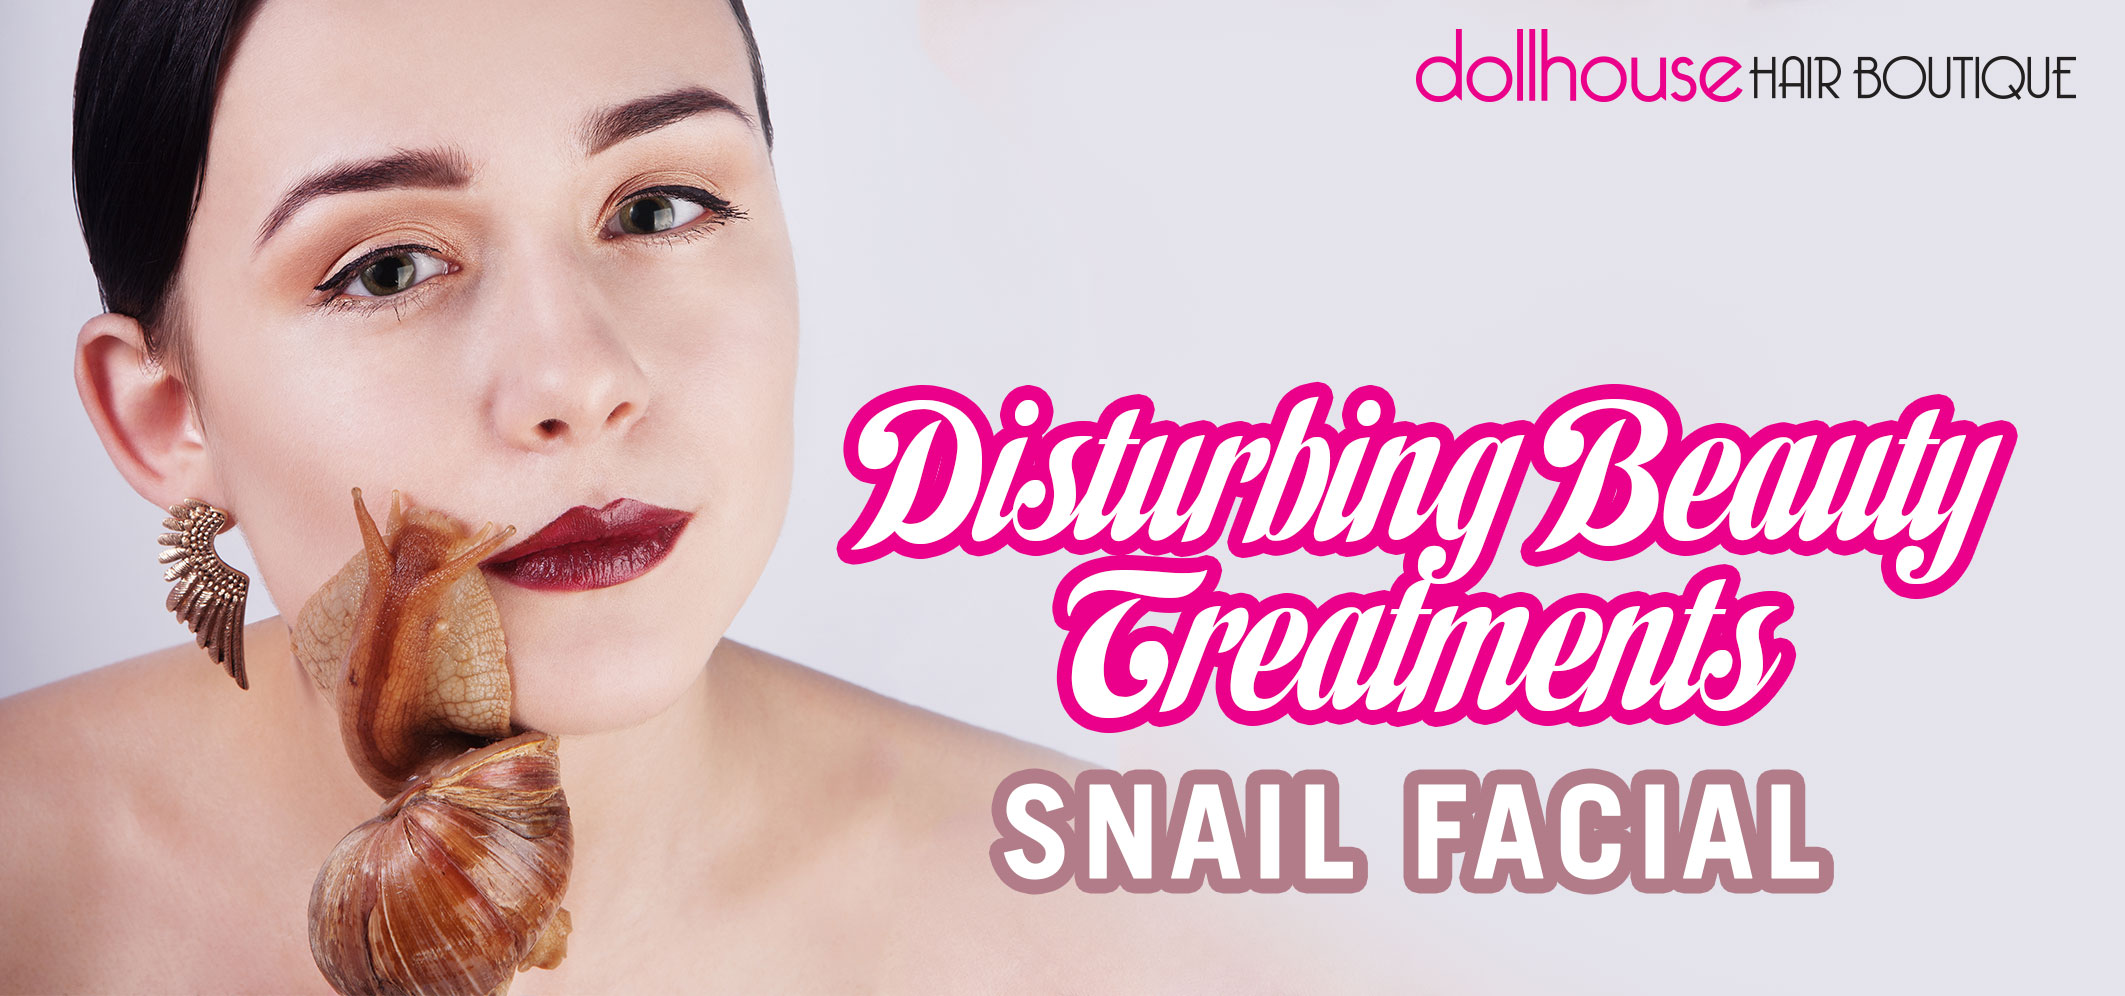 Disturbing-Beauty-Treatments-Snail-Facial